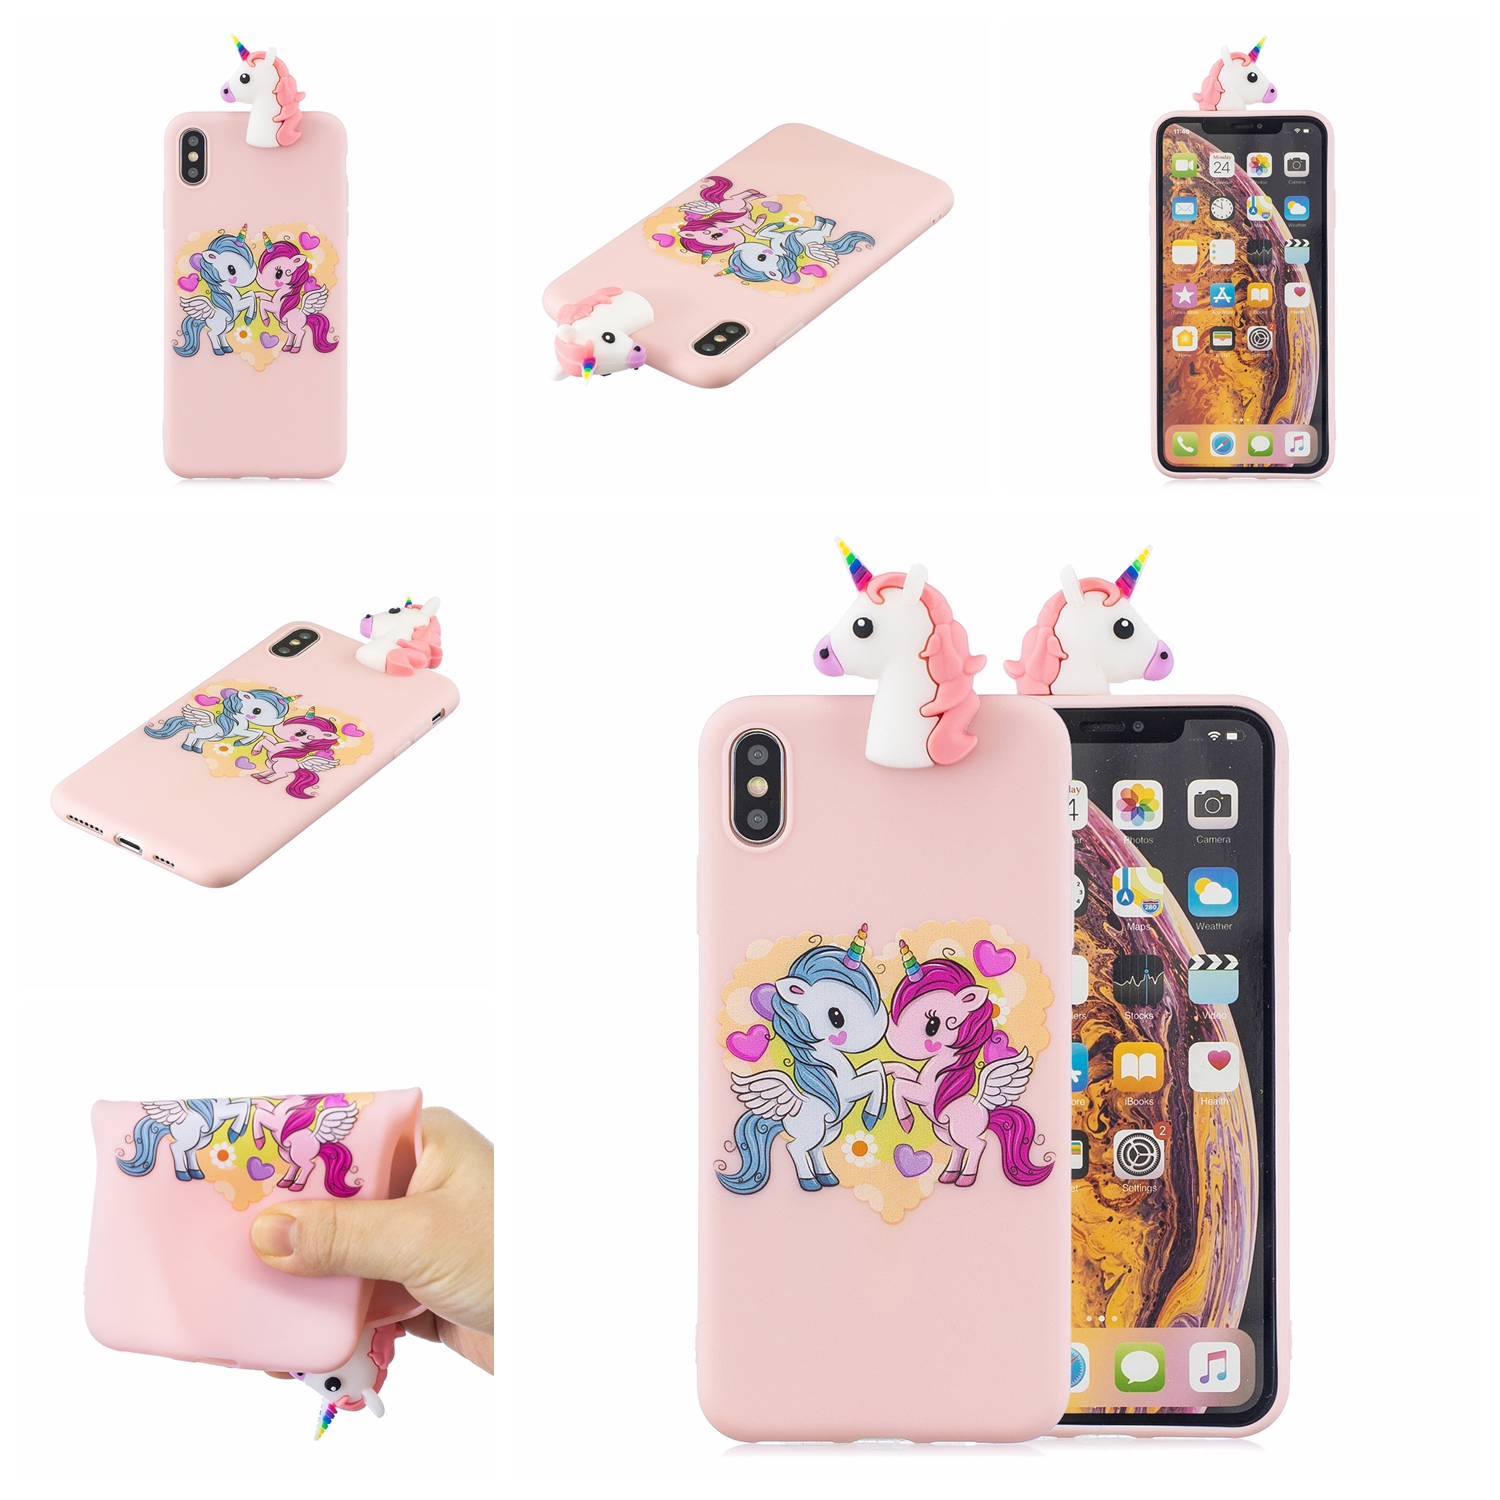 For OPPO Realme 2/A5 Indian Version 3D Cute Coloured Painted Animal TPU Anti-scratch Non-slip Protective Cover Back Case Light pink